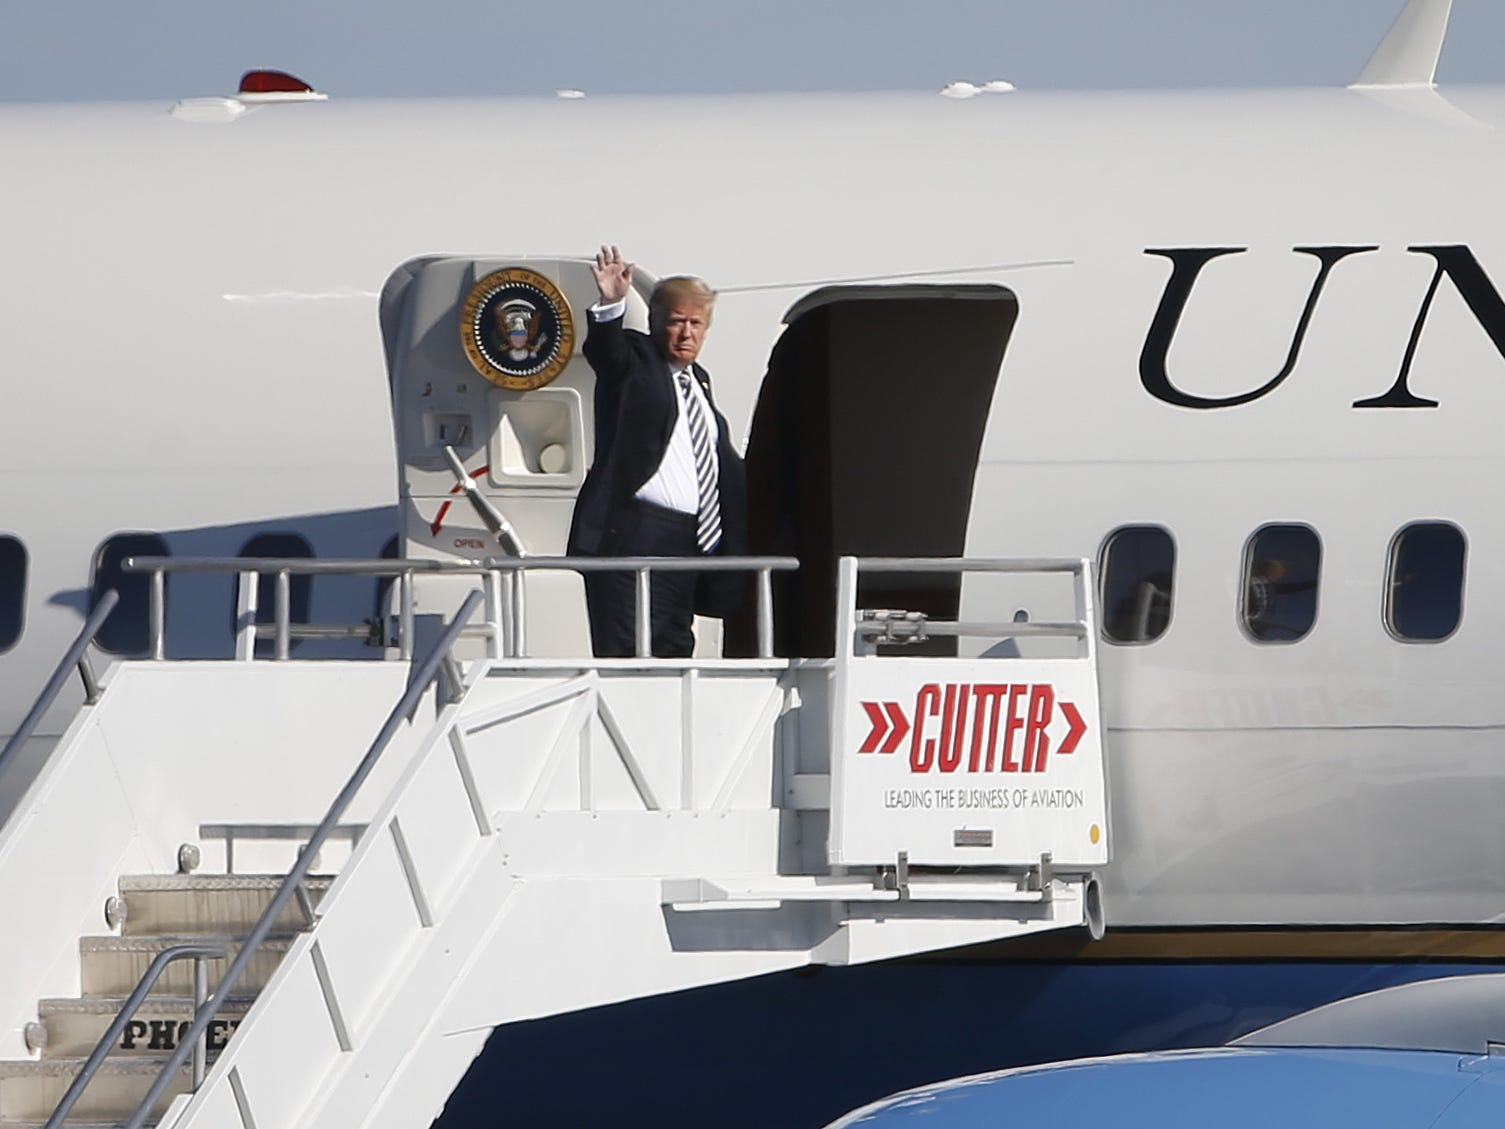 President Donald Trump waves as he boards Air Force Two at Sky Harbor Airport in Phoenix, Ariz. on October 20, 2018.